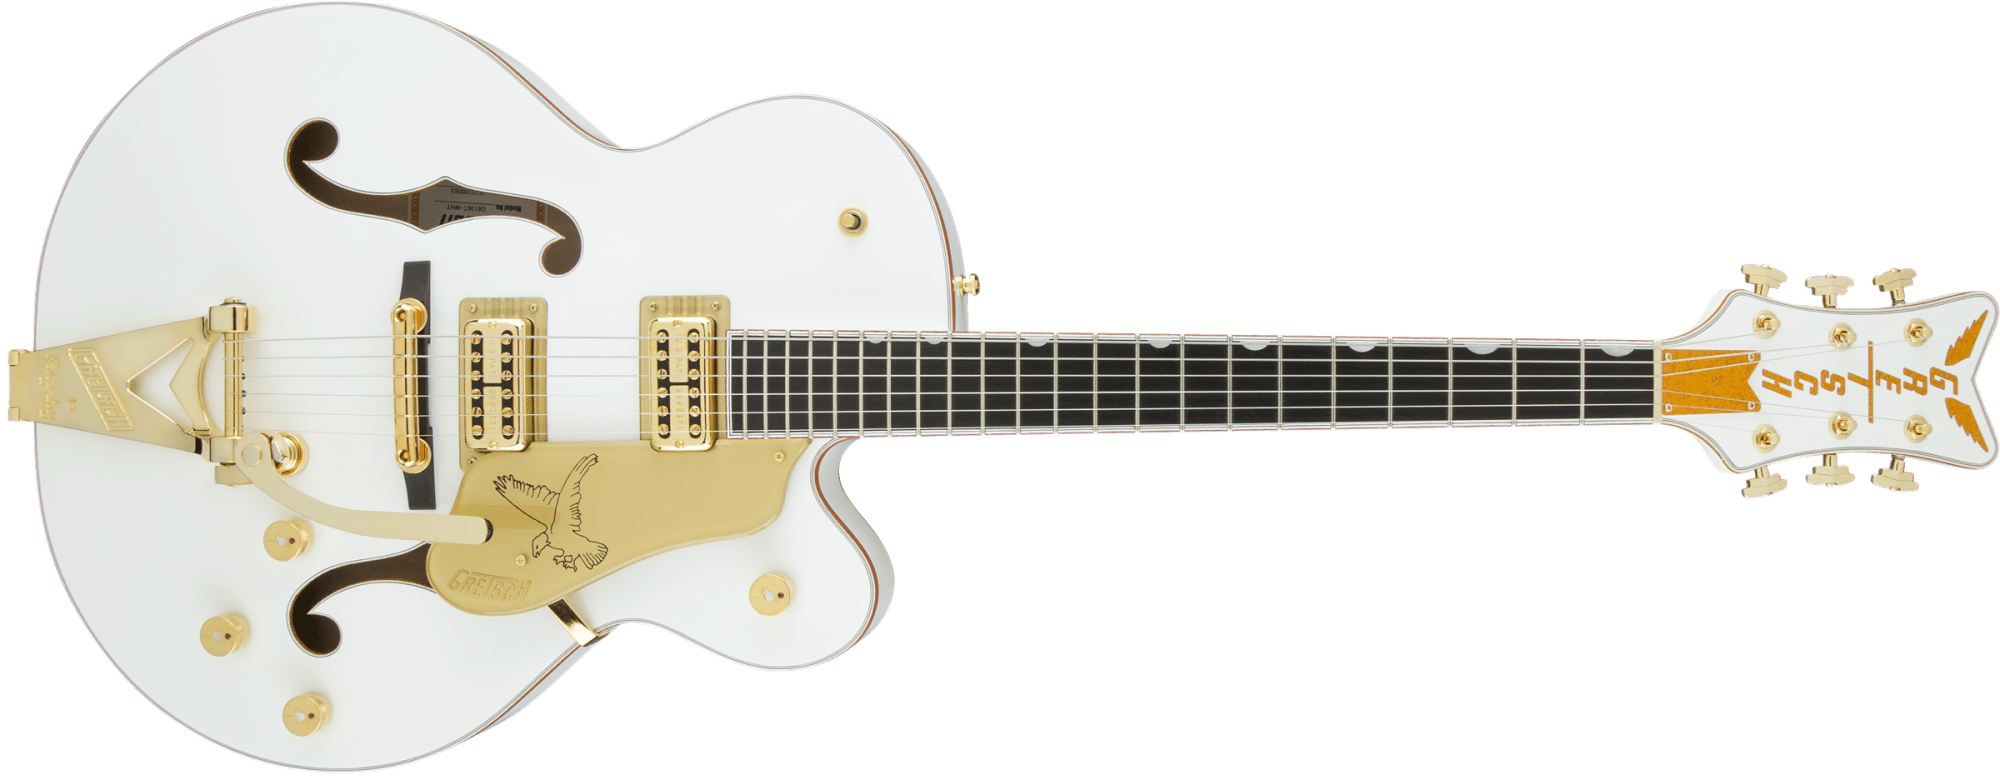 hight resolution of hollow body g6136t wht players edition falcon with string thru bigsby filter tron pickups white